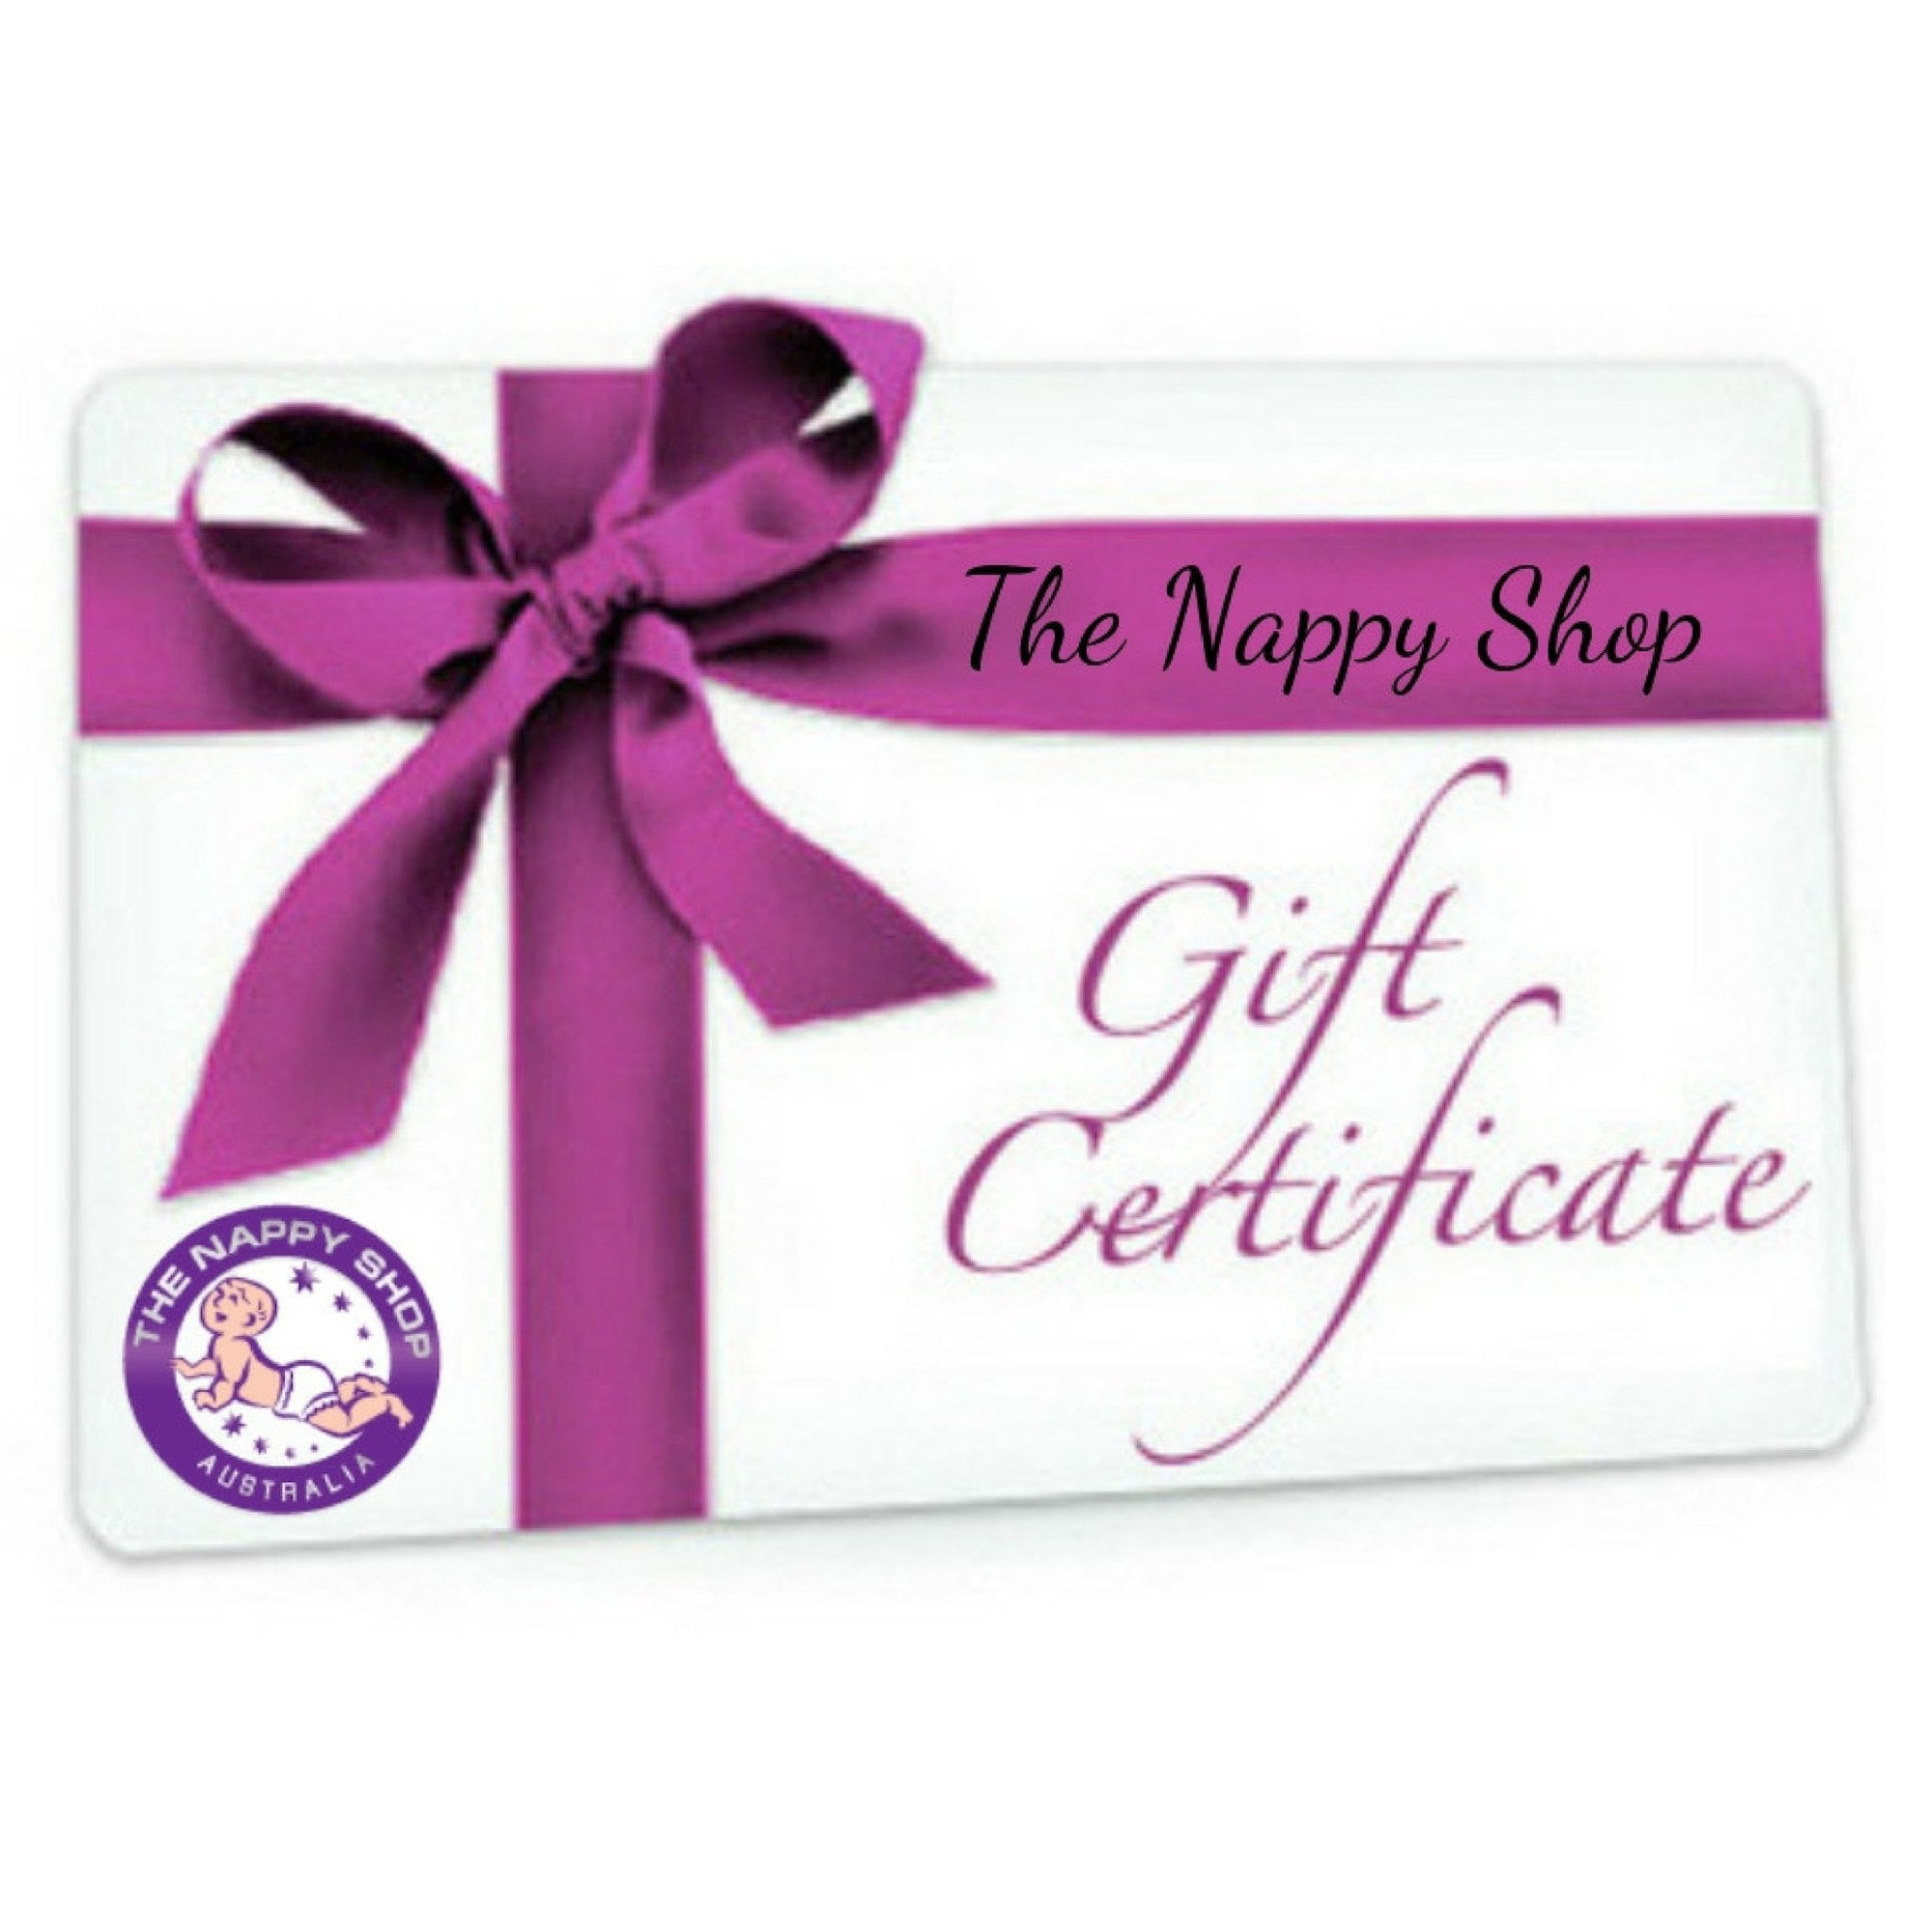 nappy shoppe coupons